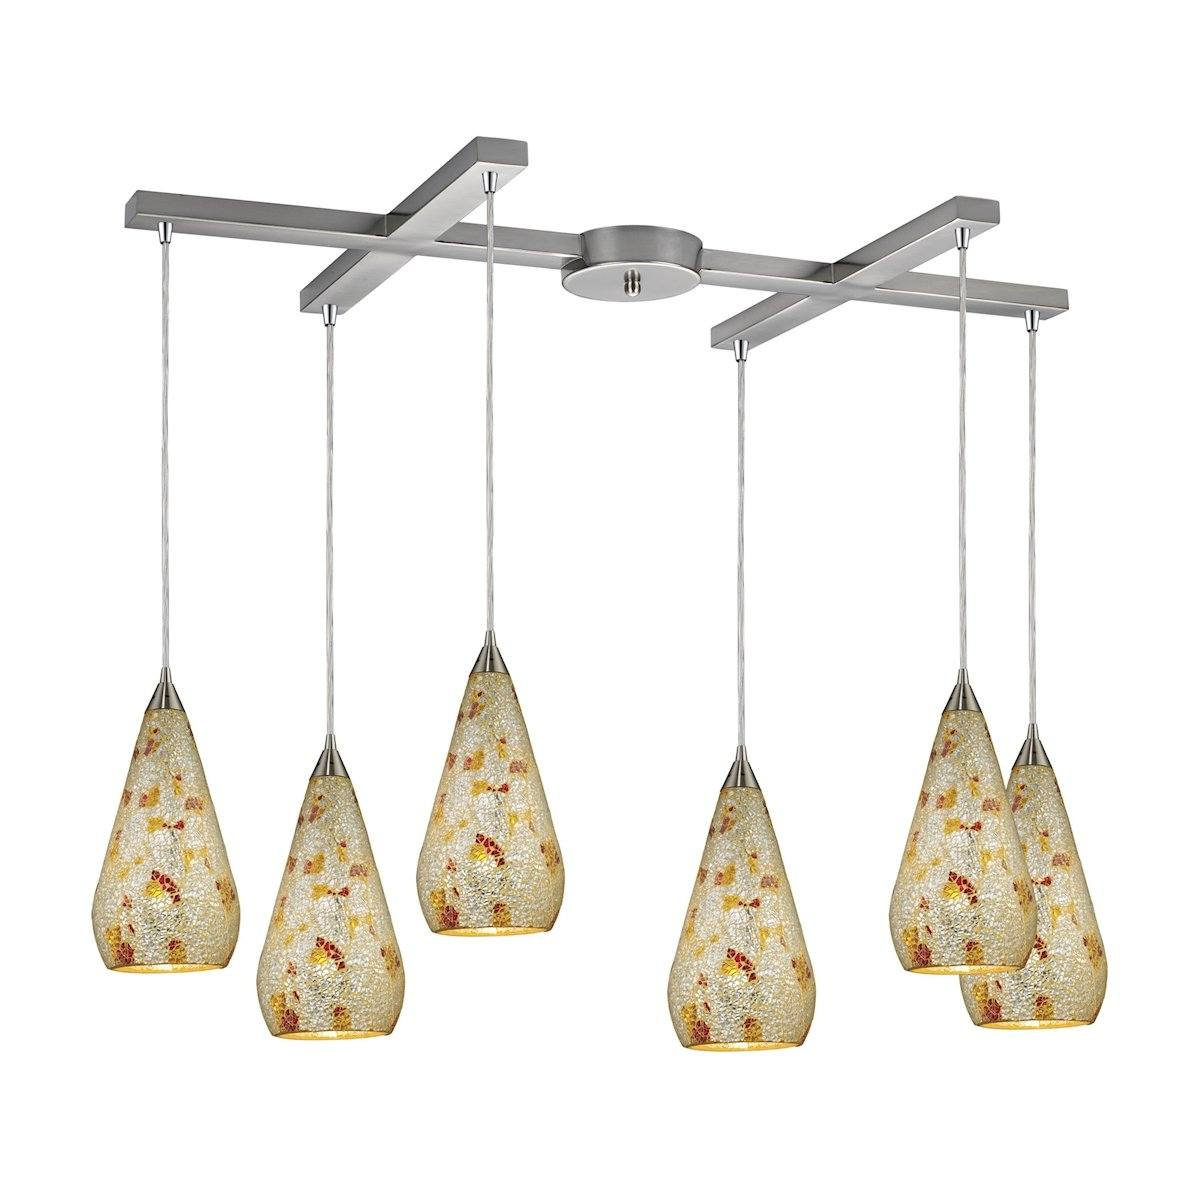 Curvalo 6 Light Pendant In Satin Nickel And Silver Multi Crackle Glass Ceiling Elk Lighting